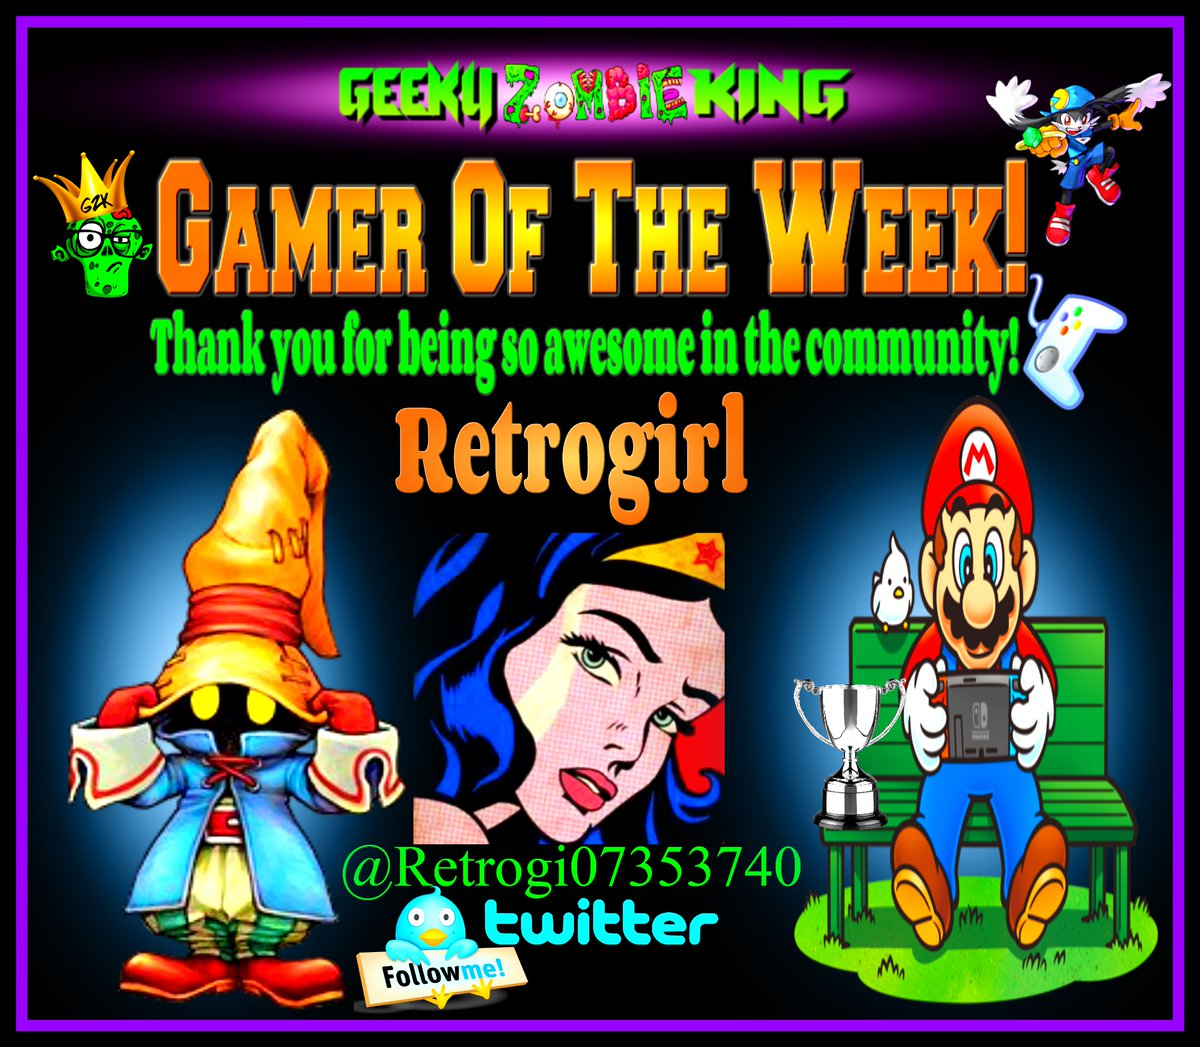 #GamerOfTheWeek goes out to Retrogirl @Retrogi07353740 Congrats! Another awesome person in our gaming community that loves her games and always sharing her collection and pick ups! Thank you also for supporting #ShareYourGames ! Be sure to check her page and give her a follow! https://t.co/Yp4s7tO5h3